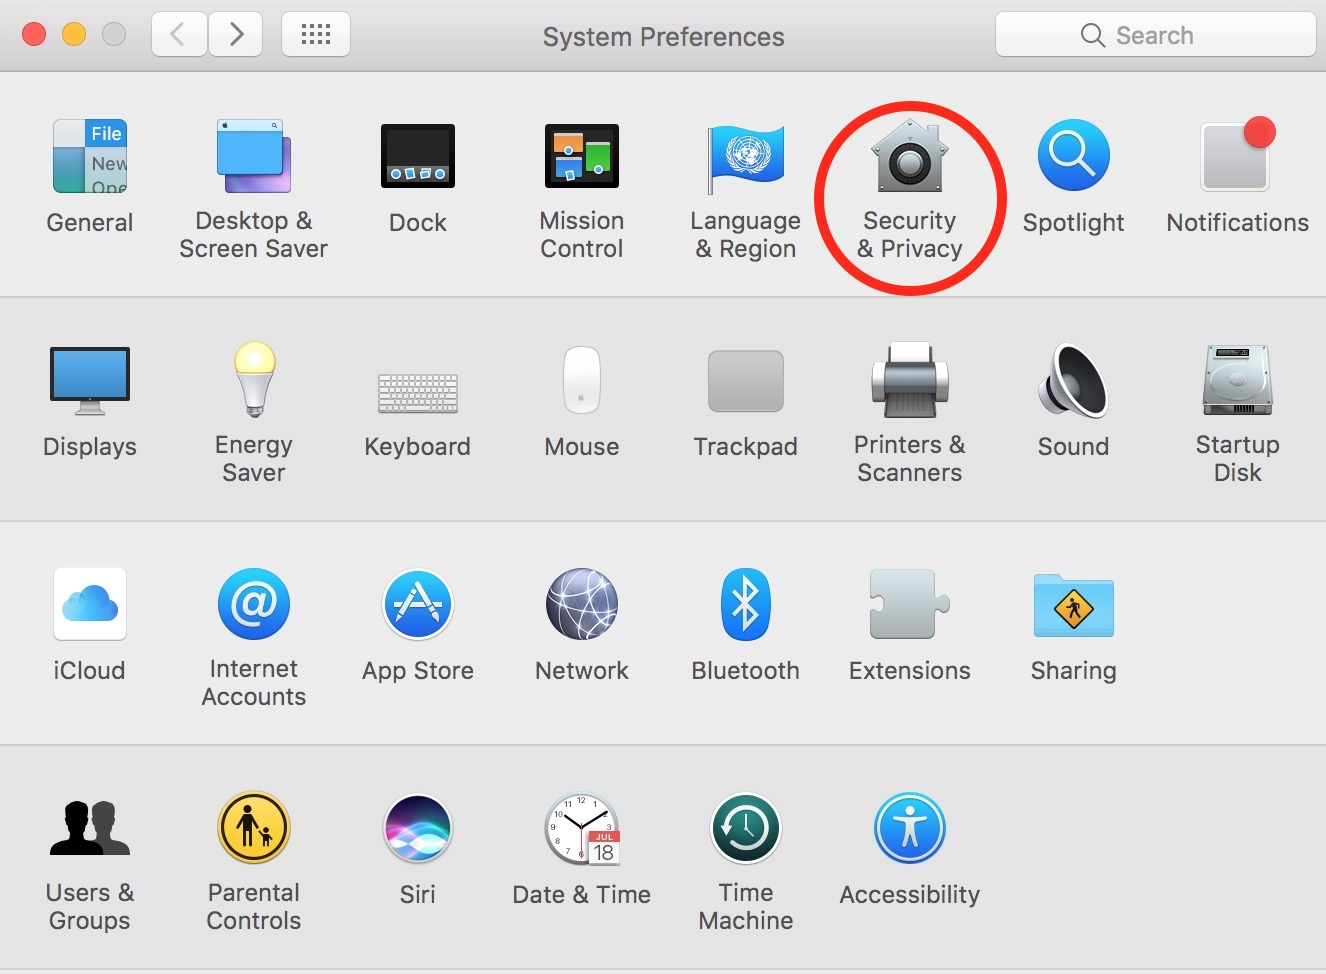 Use the Security & Privacy settings in System Preferences to add a password to your Mac